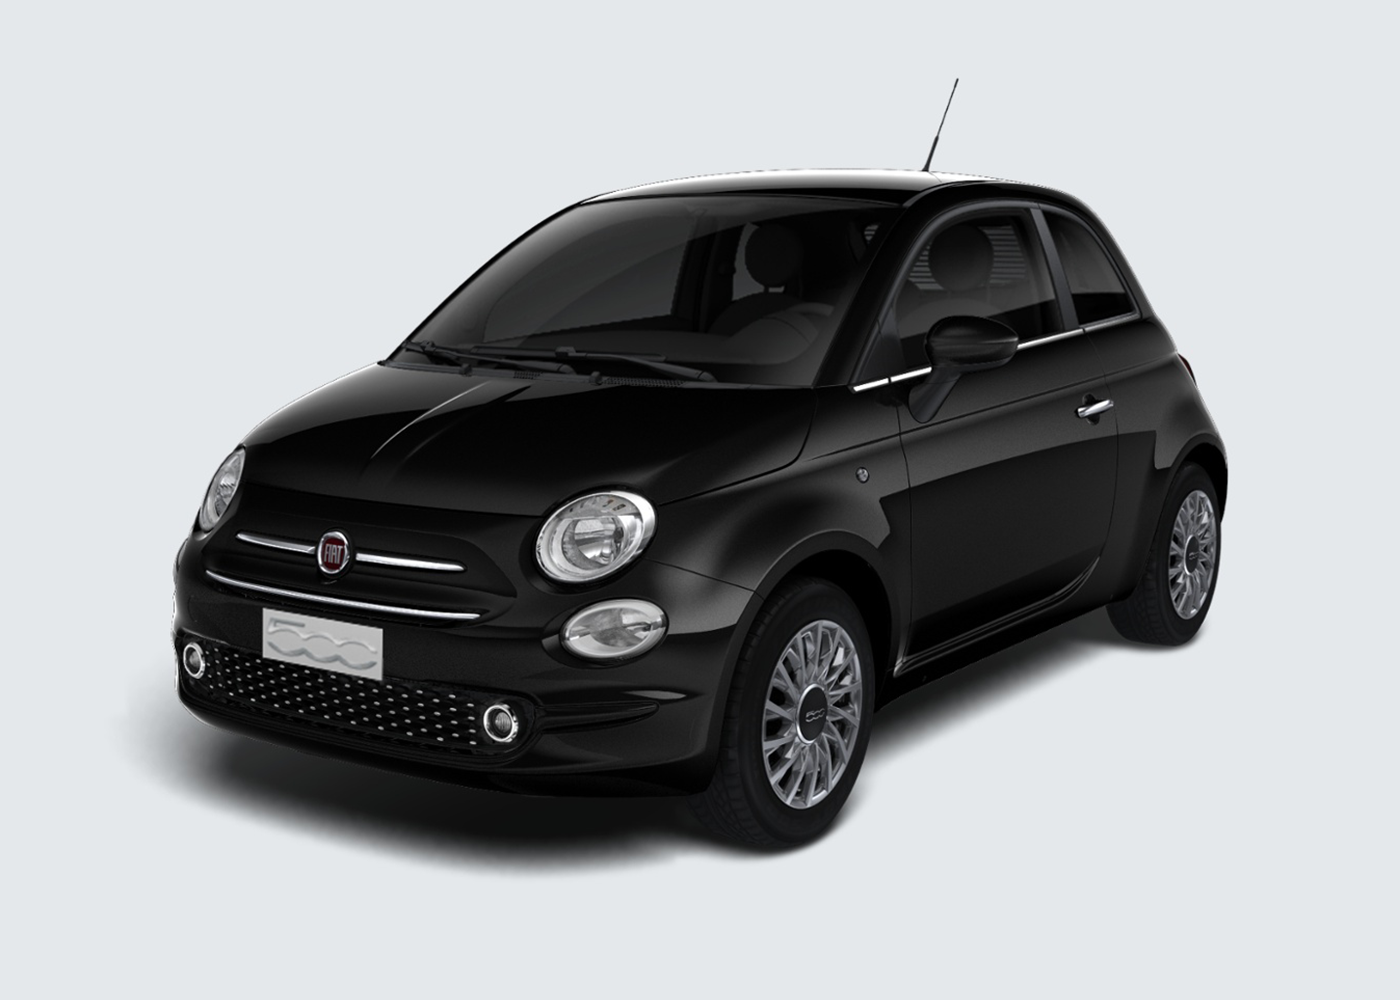 fiat 500 1 2 lounge nero vesuvio km0 a soli 12687 su miacar ow6xe. Black Bedroom Furniture Sets. Home Design Ideas